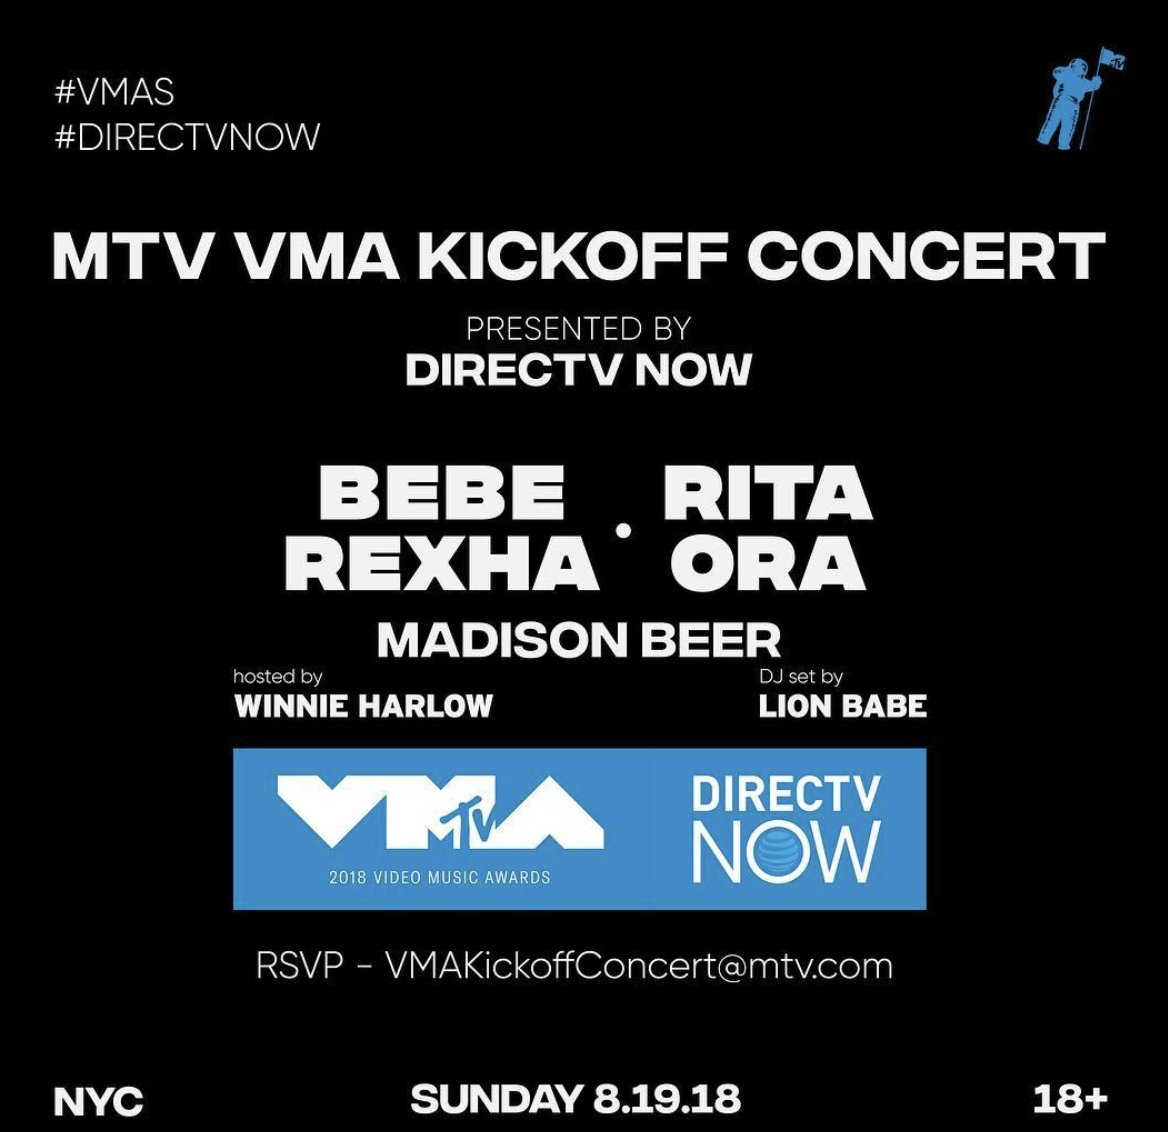 Finally get to see my girl @BebeRexha tonight performing at the @MTV @vmas Kickoff show in New York City!! https://t.co/EOMDeZ99or